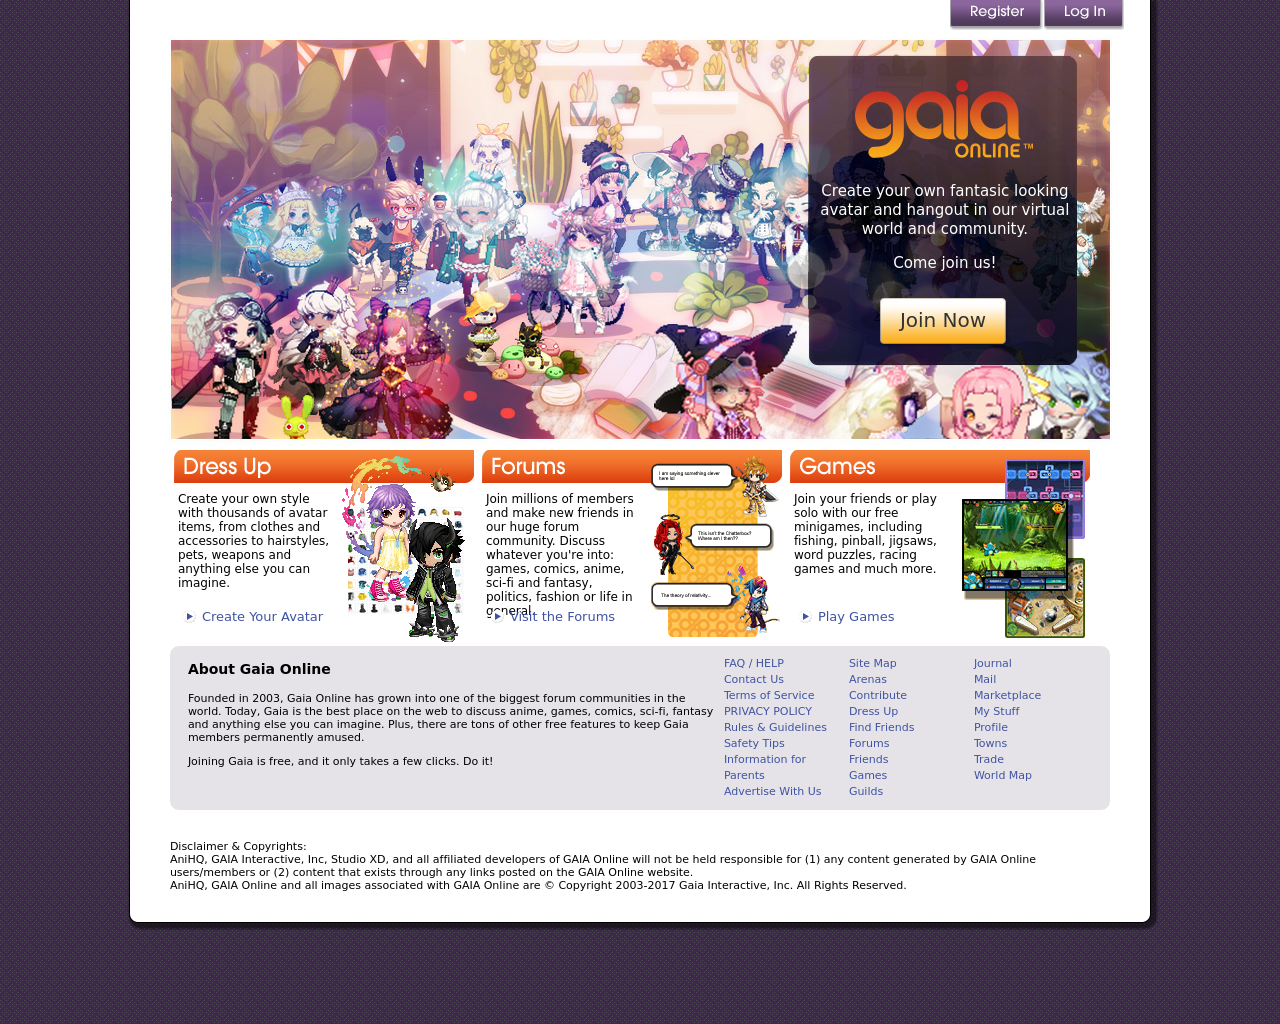 Gaia-Online-Advertising-Reviews-Pricing